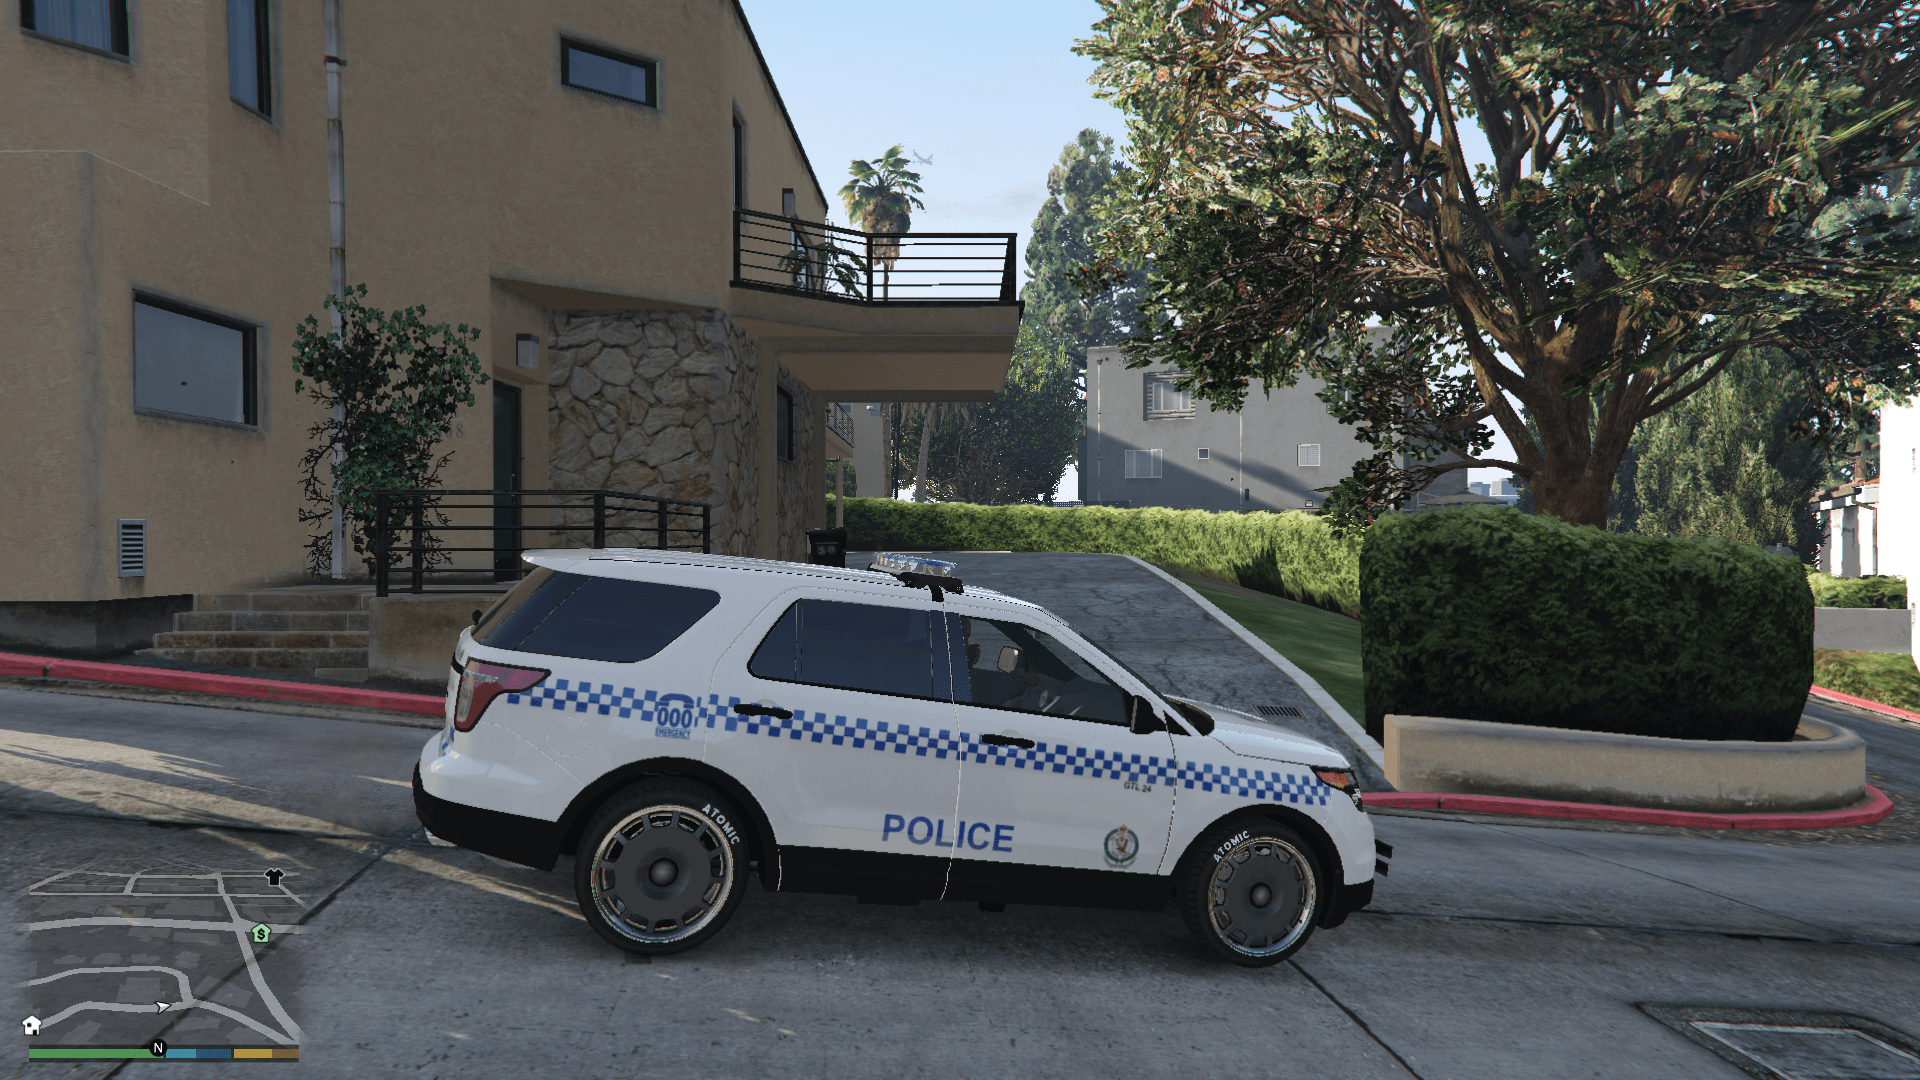 where to find helicopters in gta 5 with Police Car Gta 5 Cheat Ps4 on 4270 Submarina likewise 1100 6424617 in addition Gta 5 Cheats All Of The Cheats On Xbox 360 moreover 27540 Pigeons also Watch.